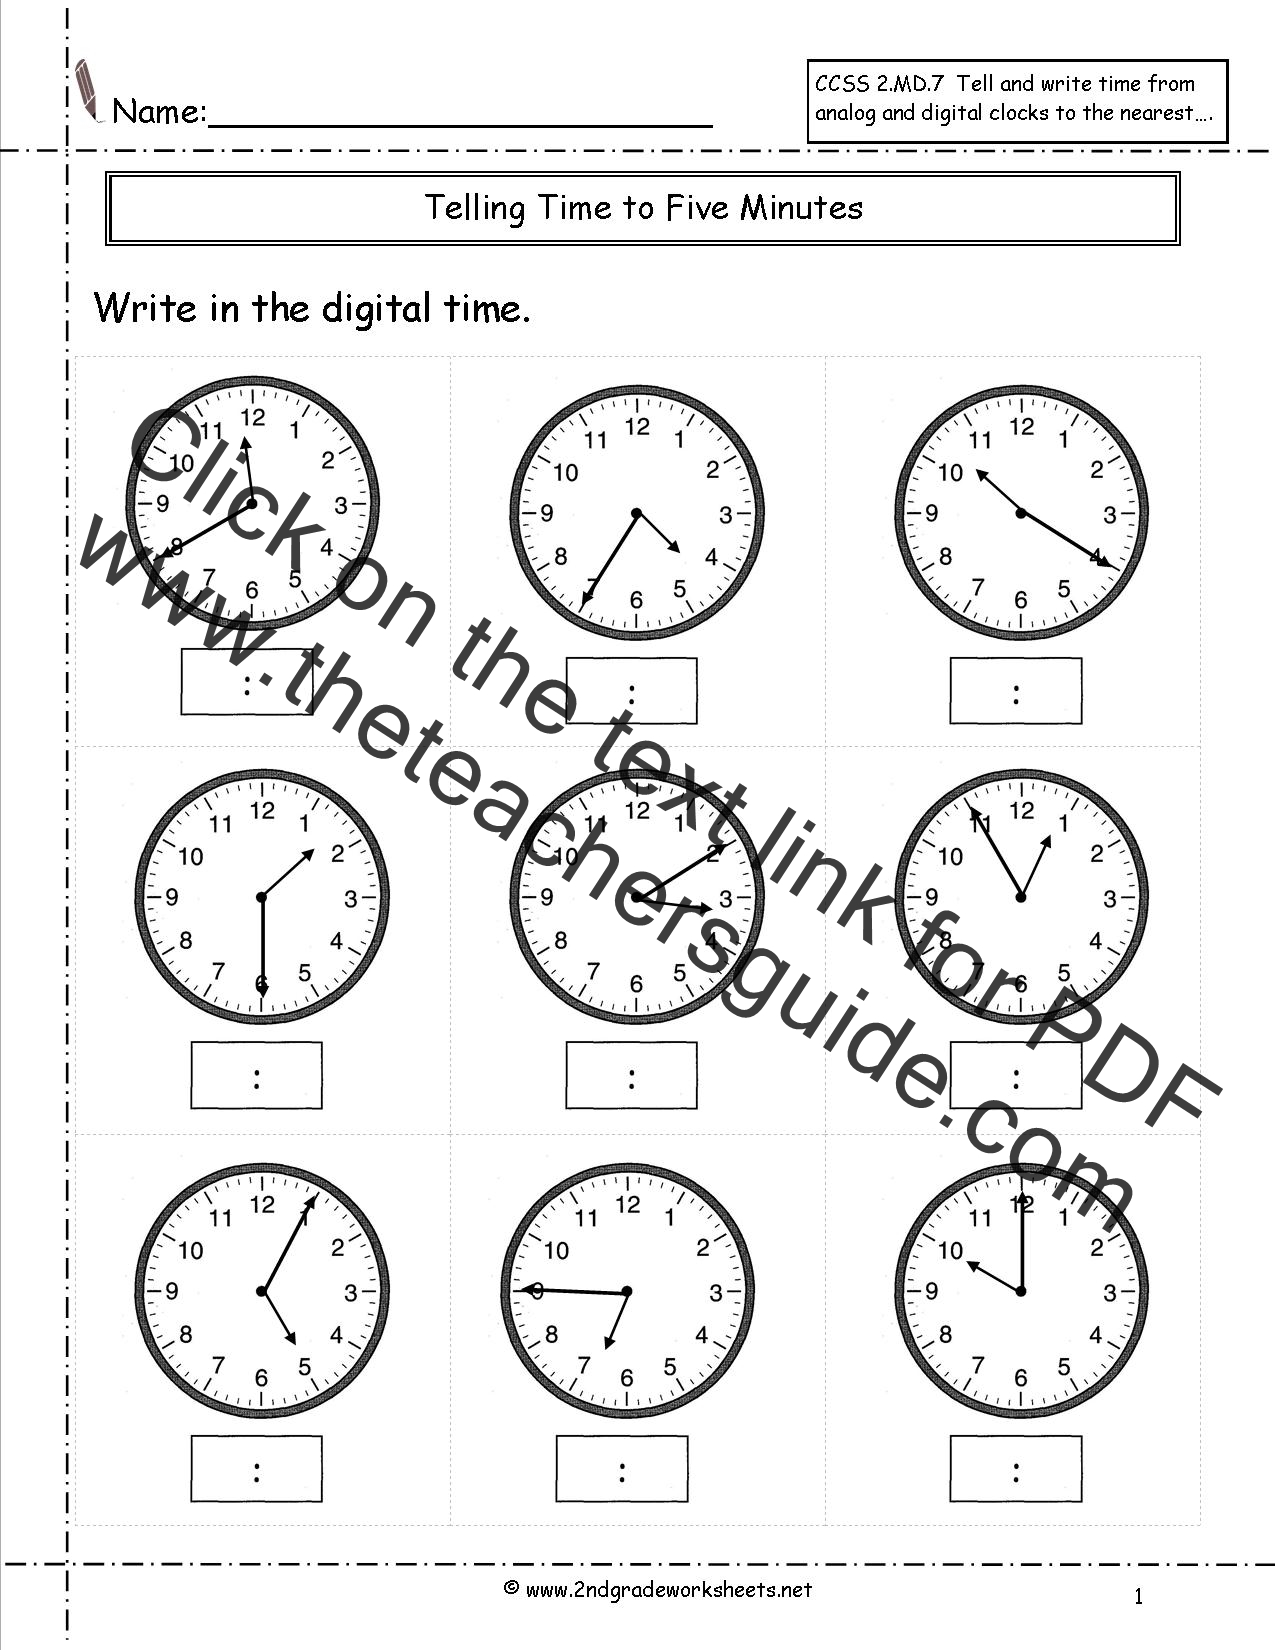 worksheet Telling Time Worksheet Generator analog clocks worksheets abitlikethis md 7 telling time to five minutes worksheets